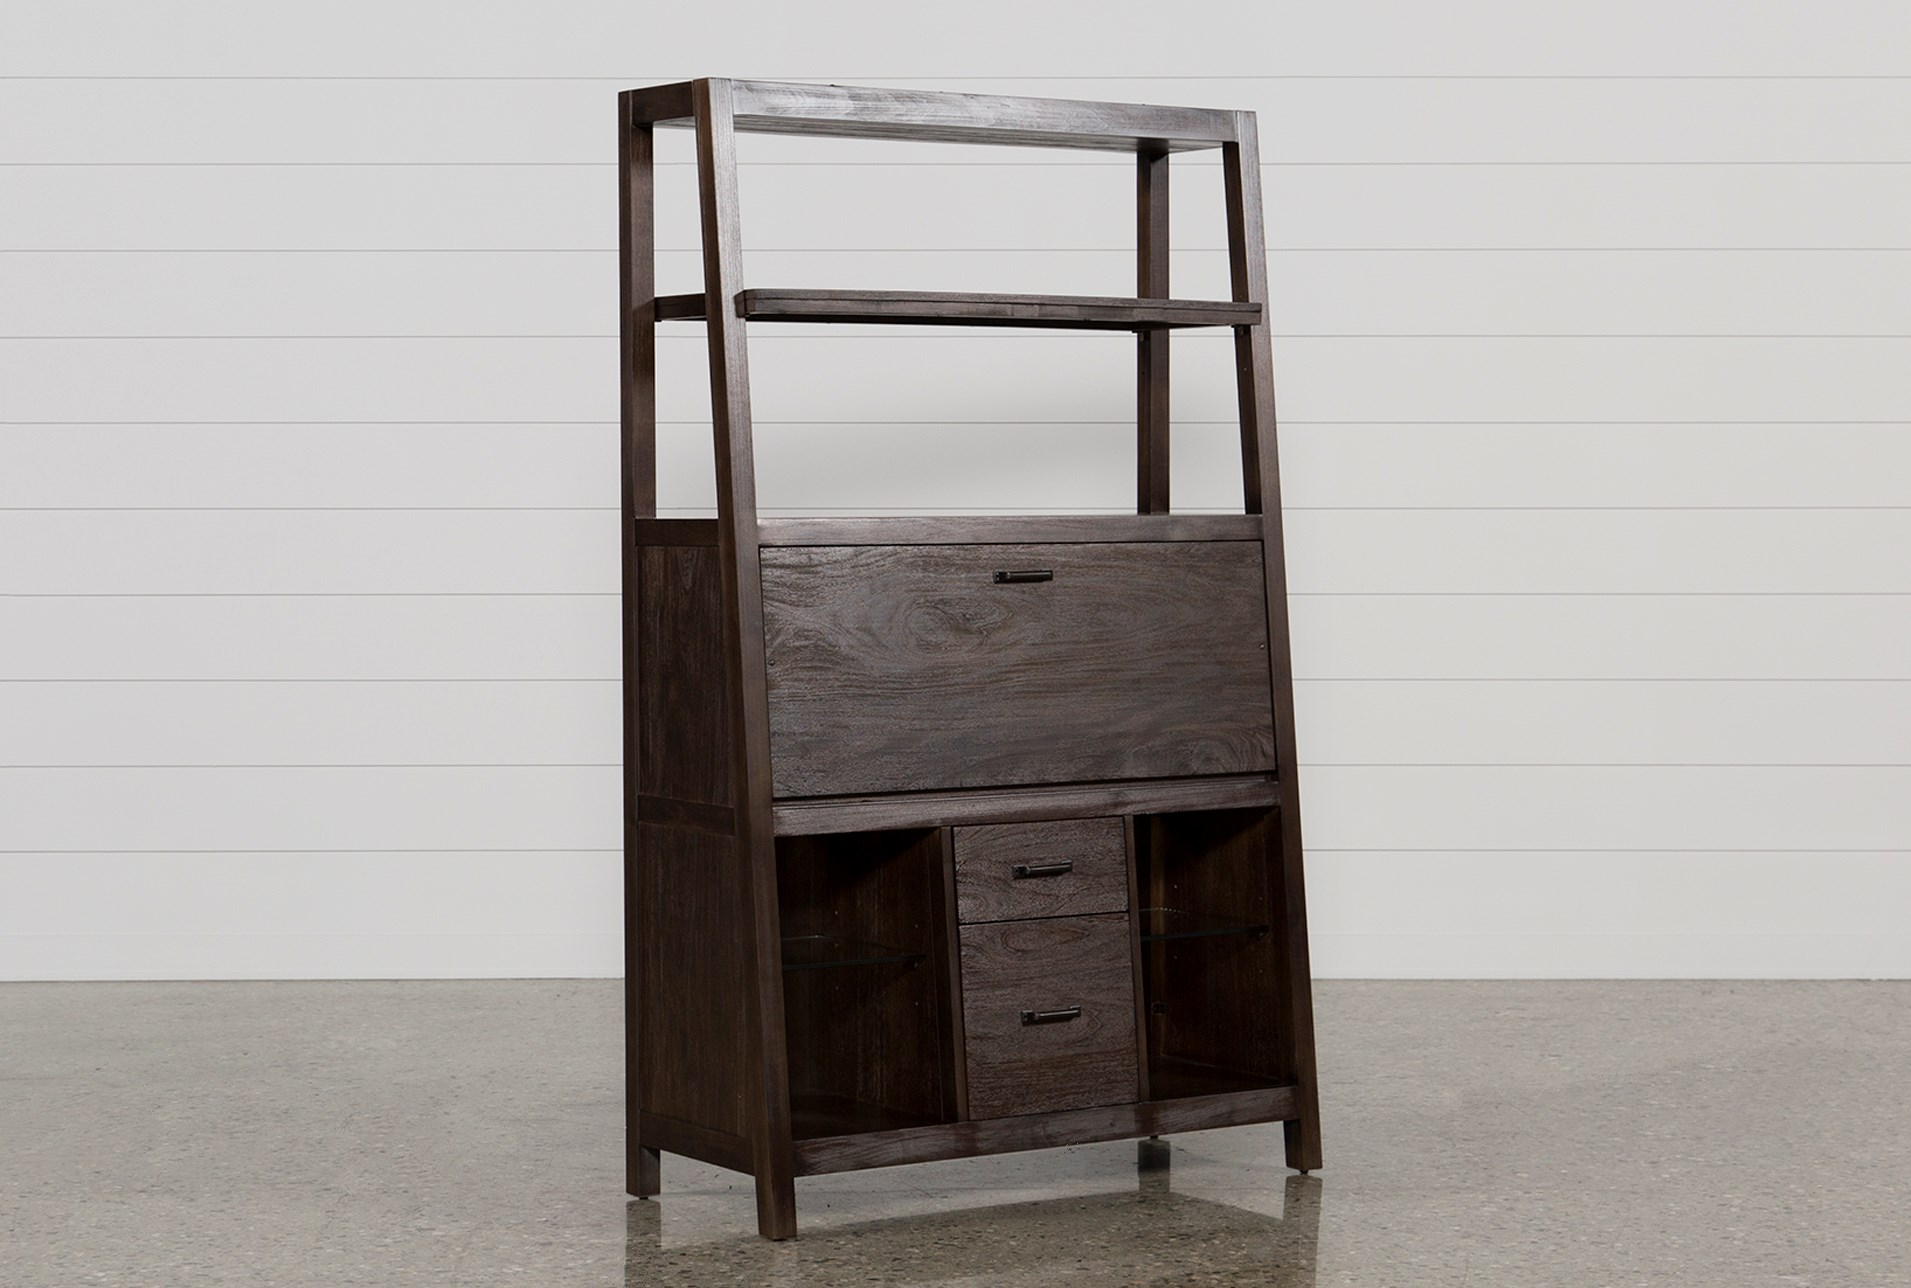 down desk copy mounted wood wall grindstone mount drop products secretary reclaimed from design front web made